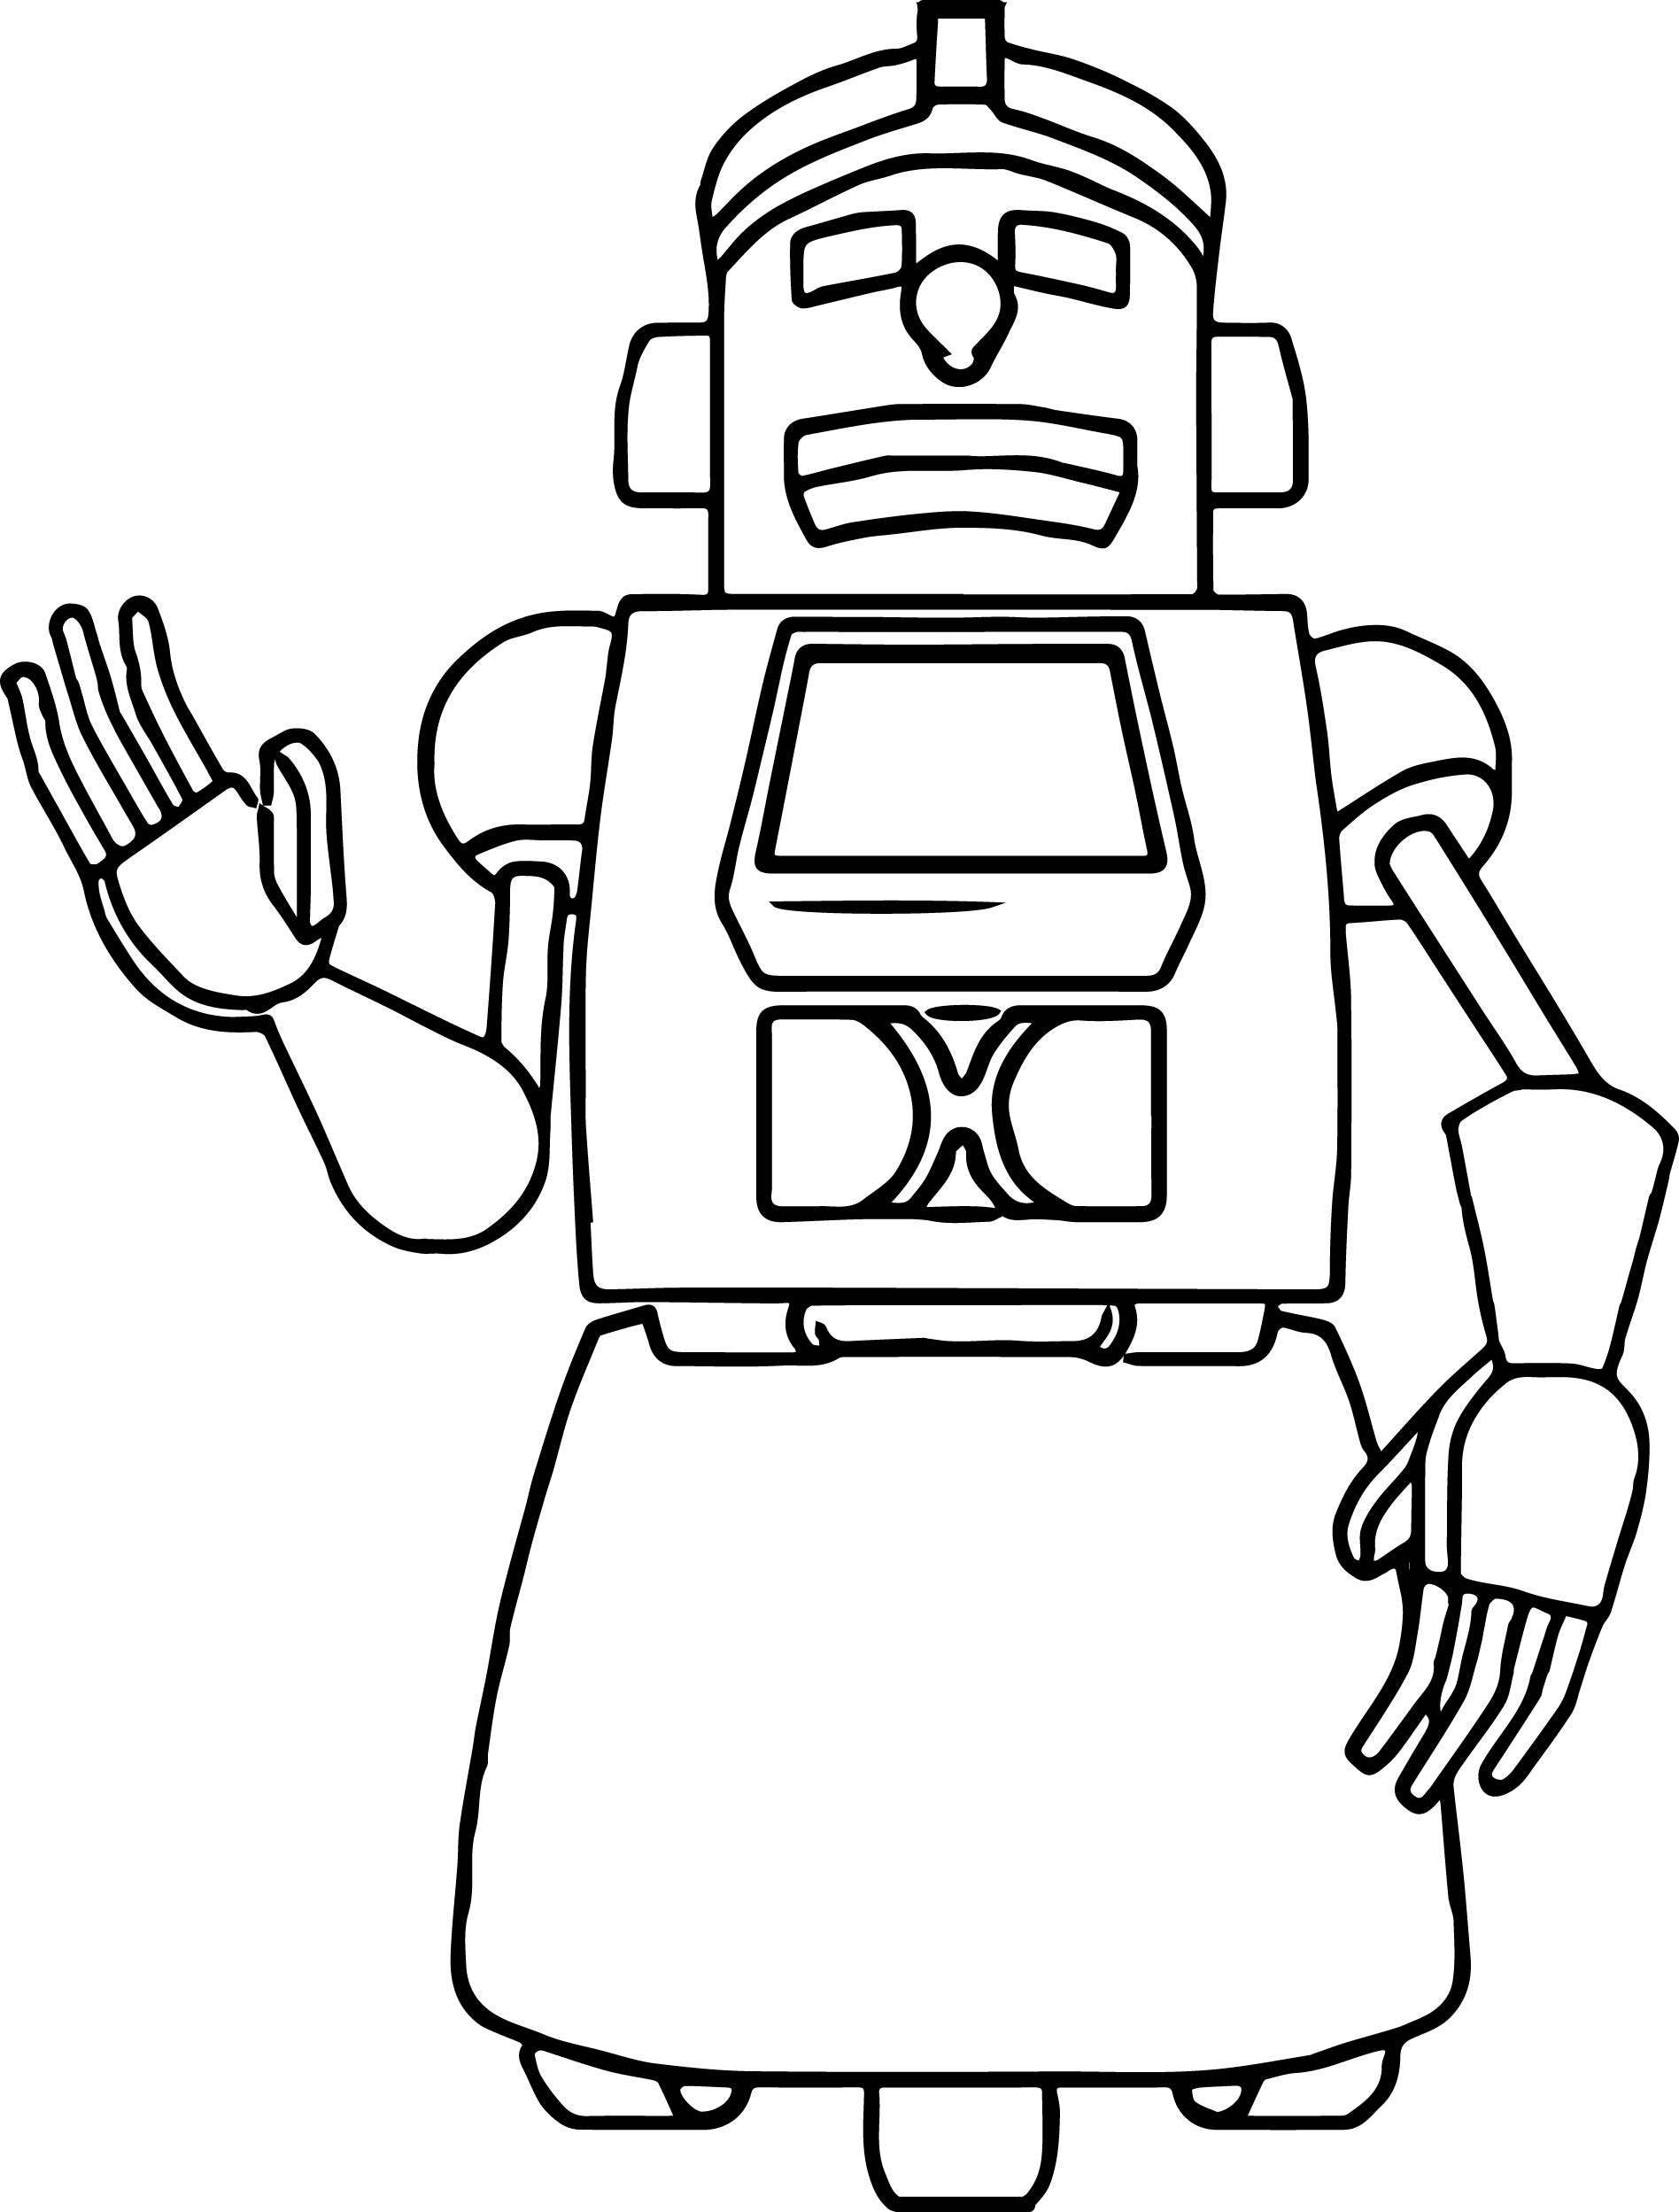 Home Work Robot Coloring Page